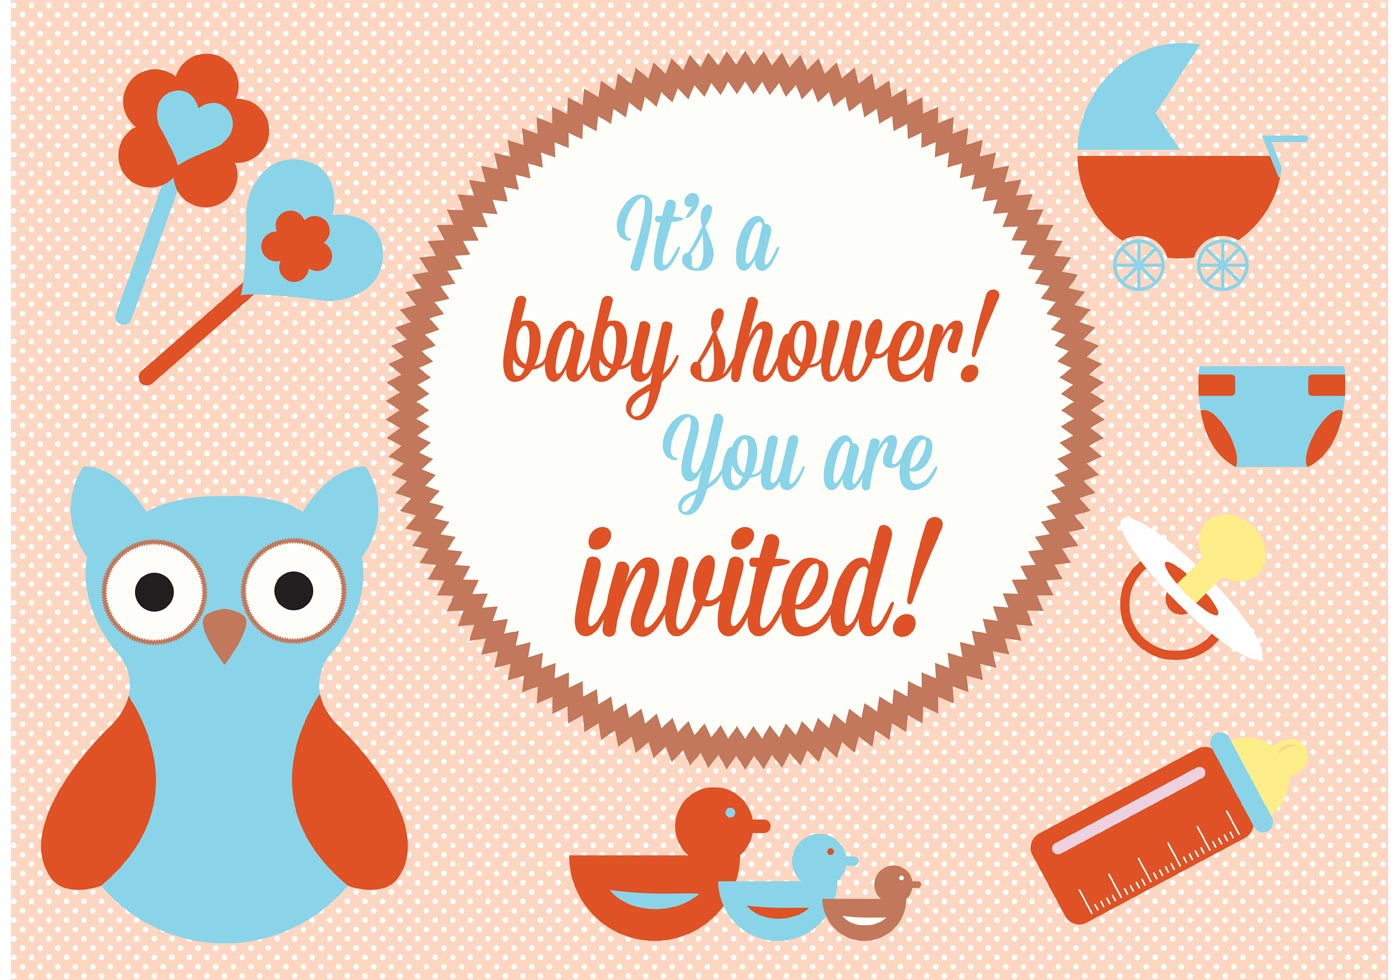 Free Baby Shower Vector Images ~ Baby shower vector elements download free art